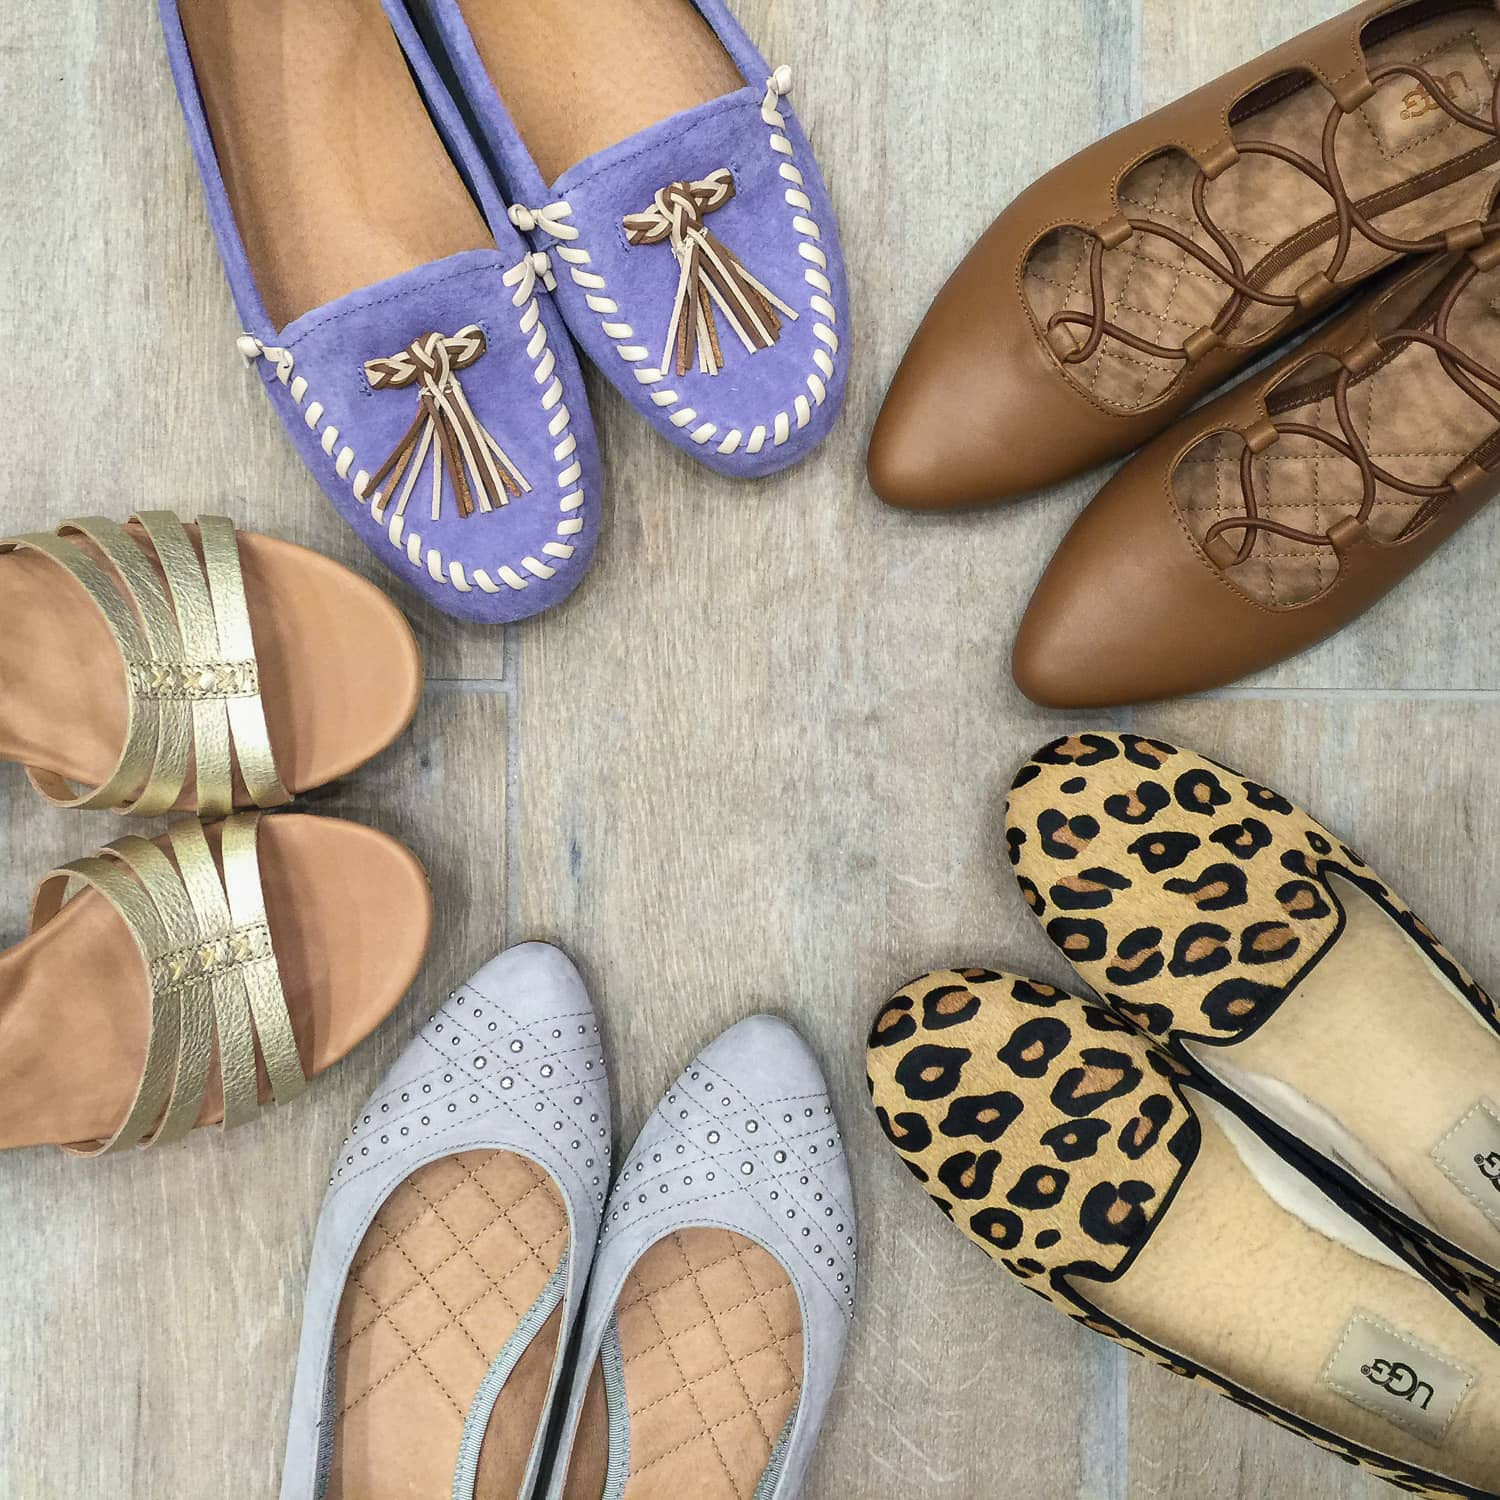 Cutest shoes for fall - Ugg ballet flats and loafers